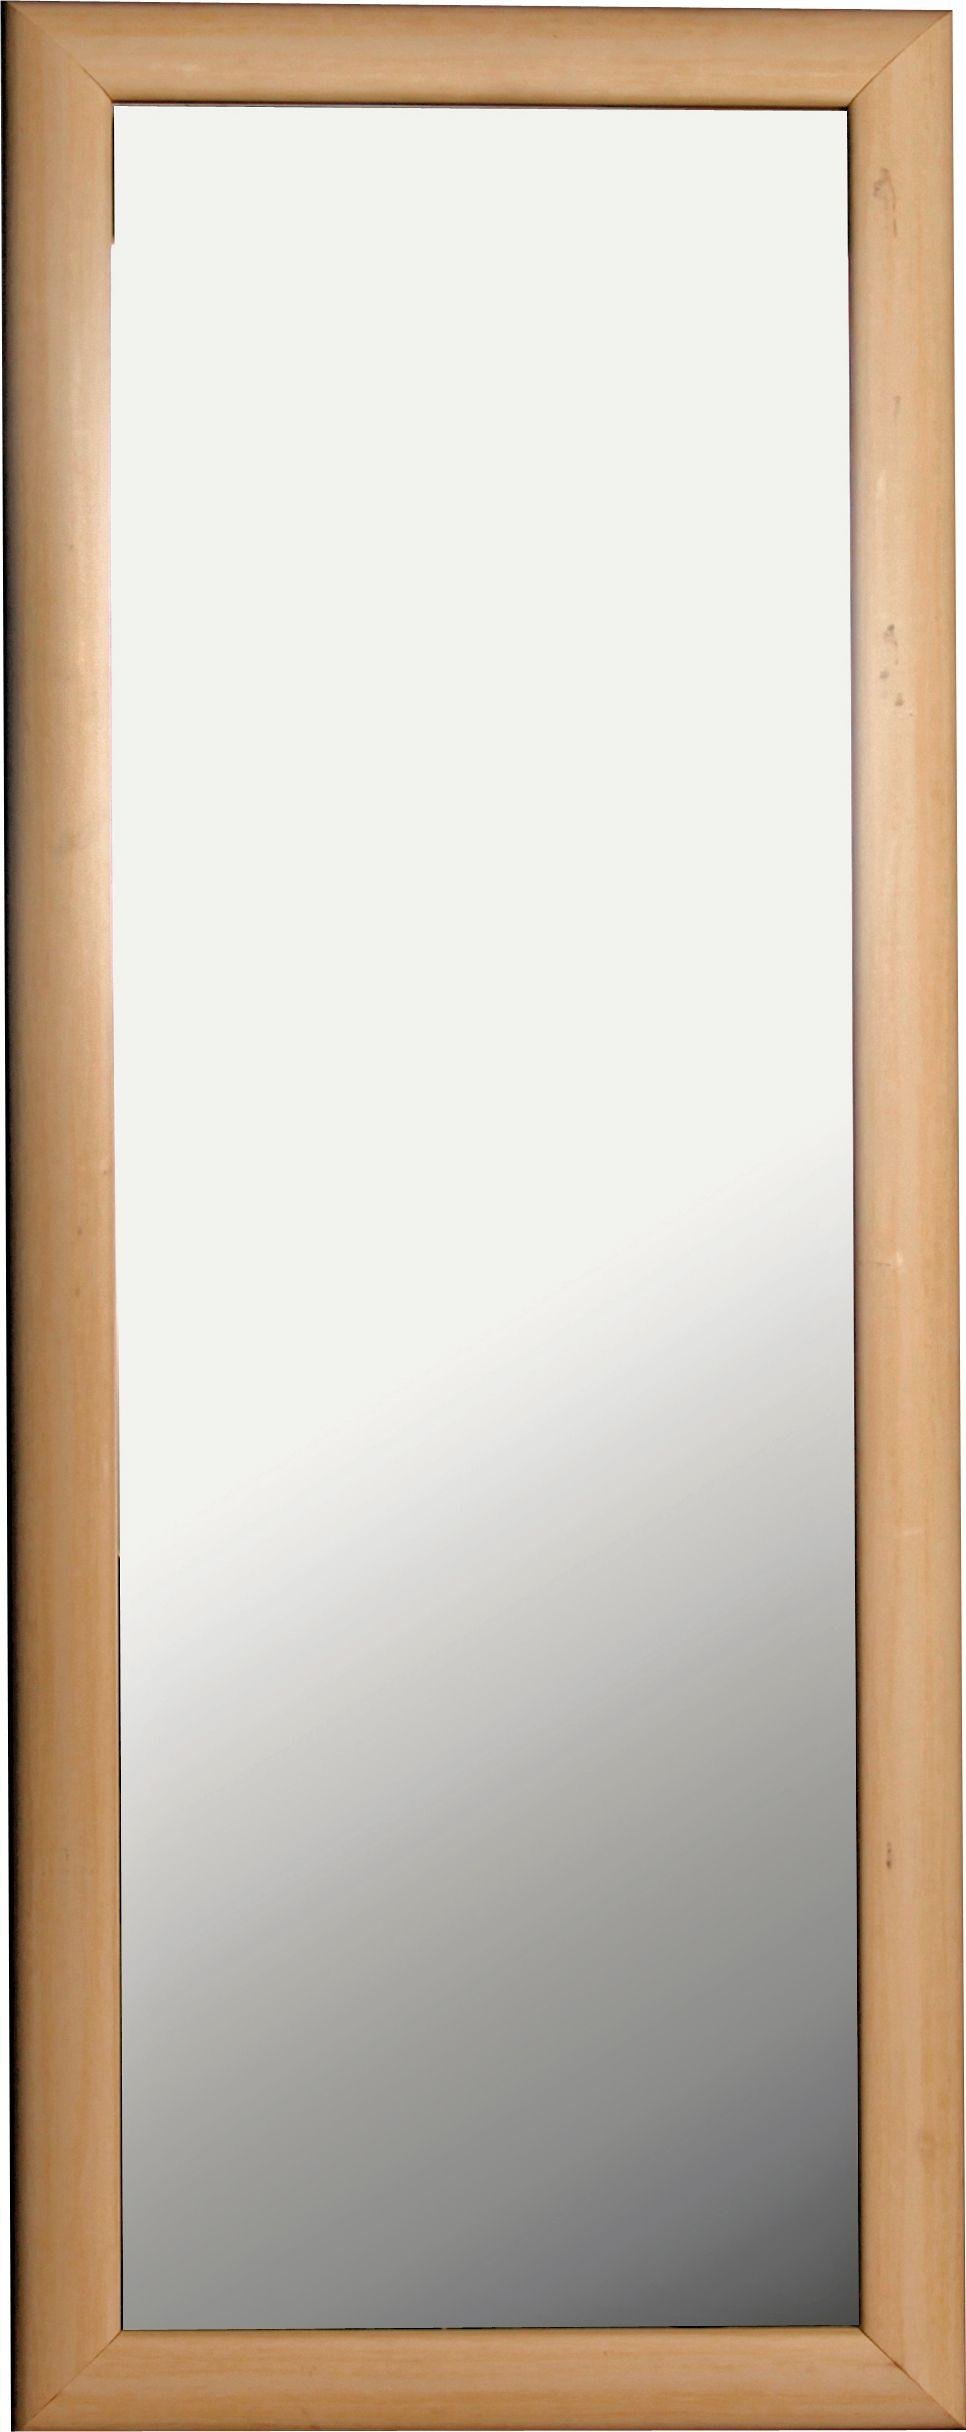 ... Wall Mirror at Argos.co.uk - Your Online Shop for Mirrors, Home